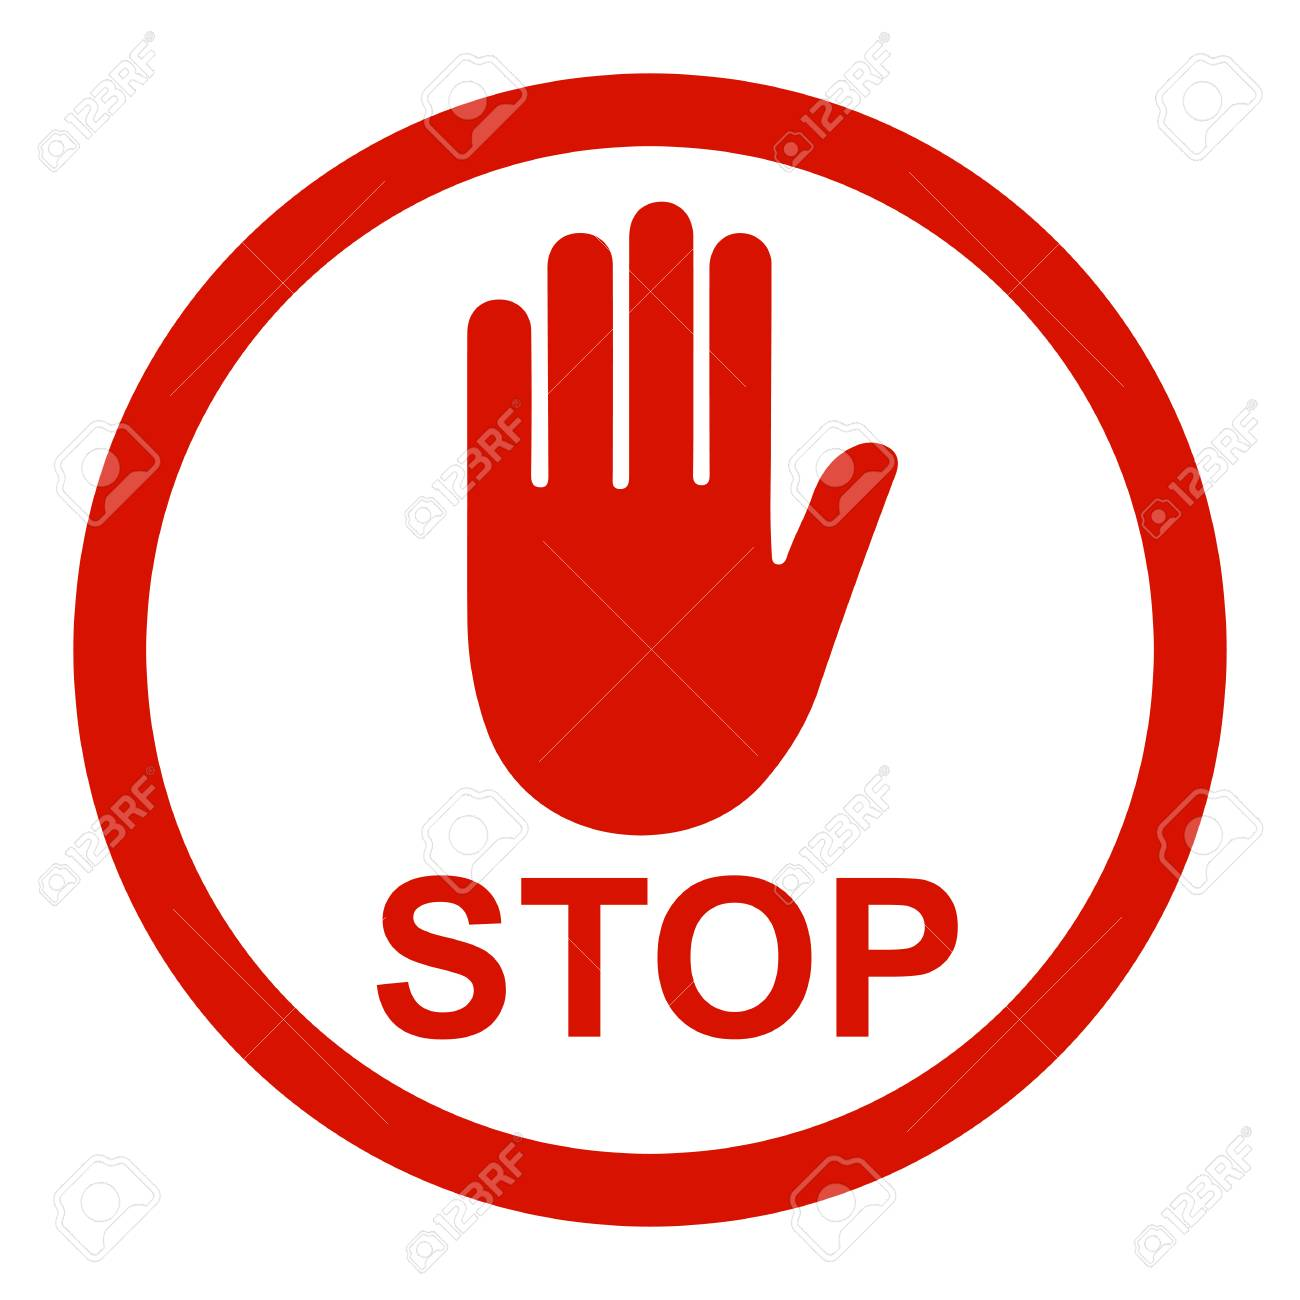 Stop sign icon with hand in circle - stock Vector illustration. - 99136954